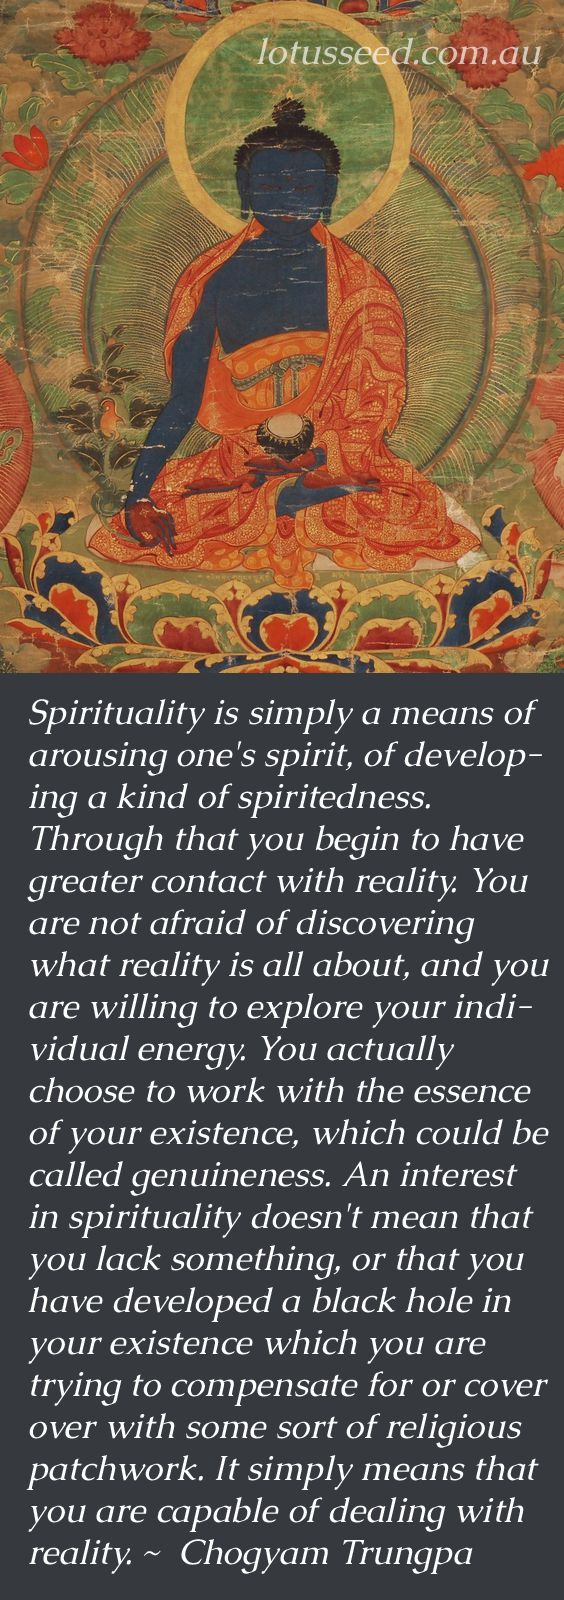 Chogyam Trungpa Buddhist Zen quotes by lotusseed.com.au